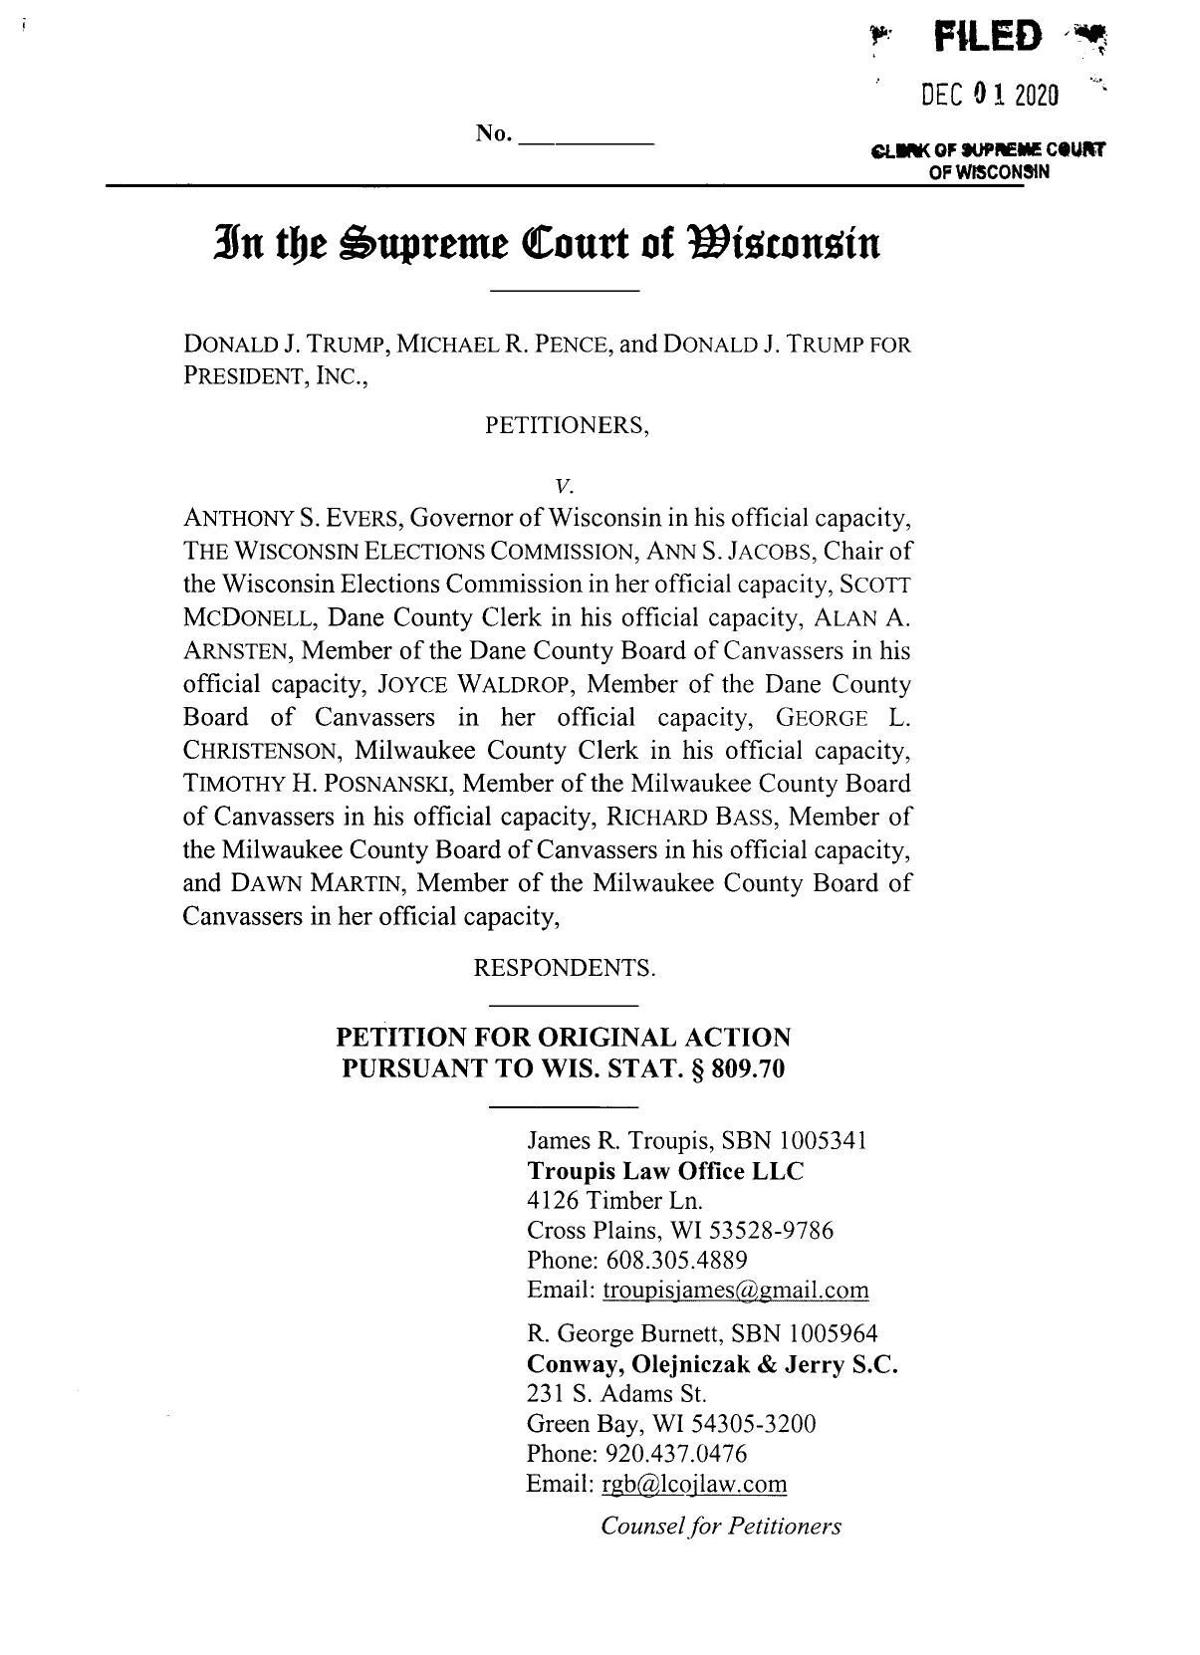 Read the complaint: Trump v. Evers